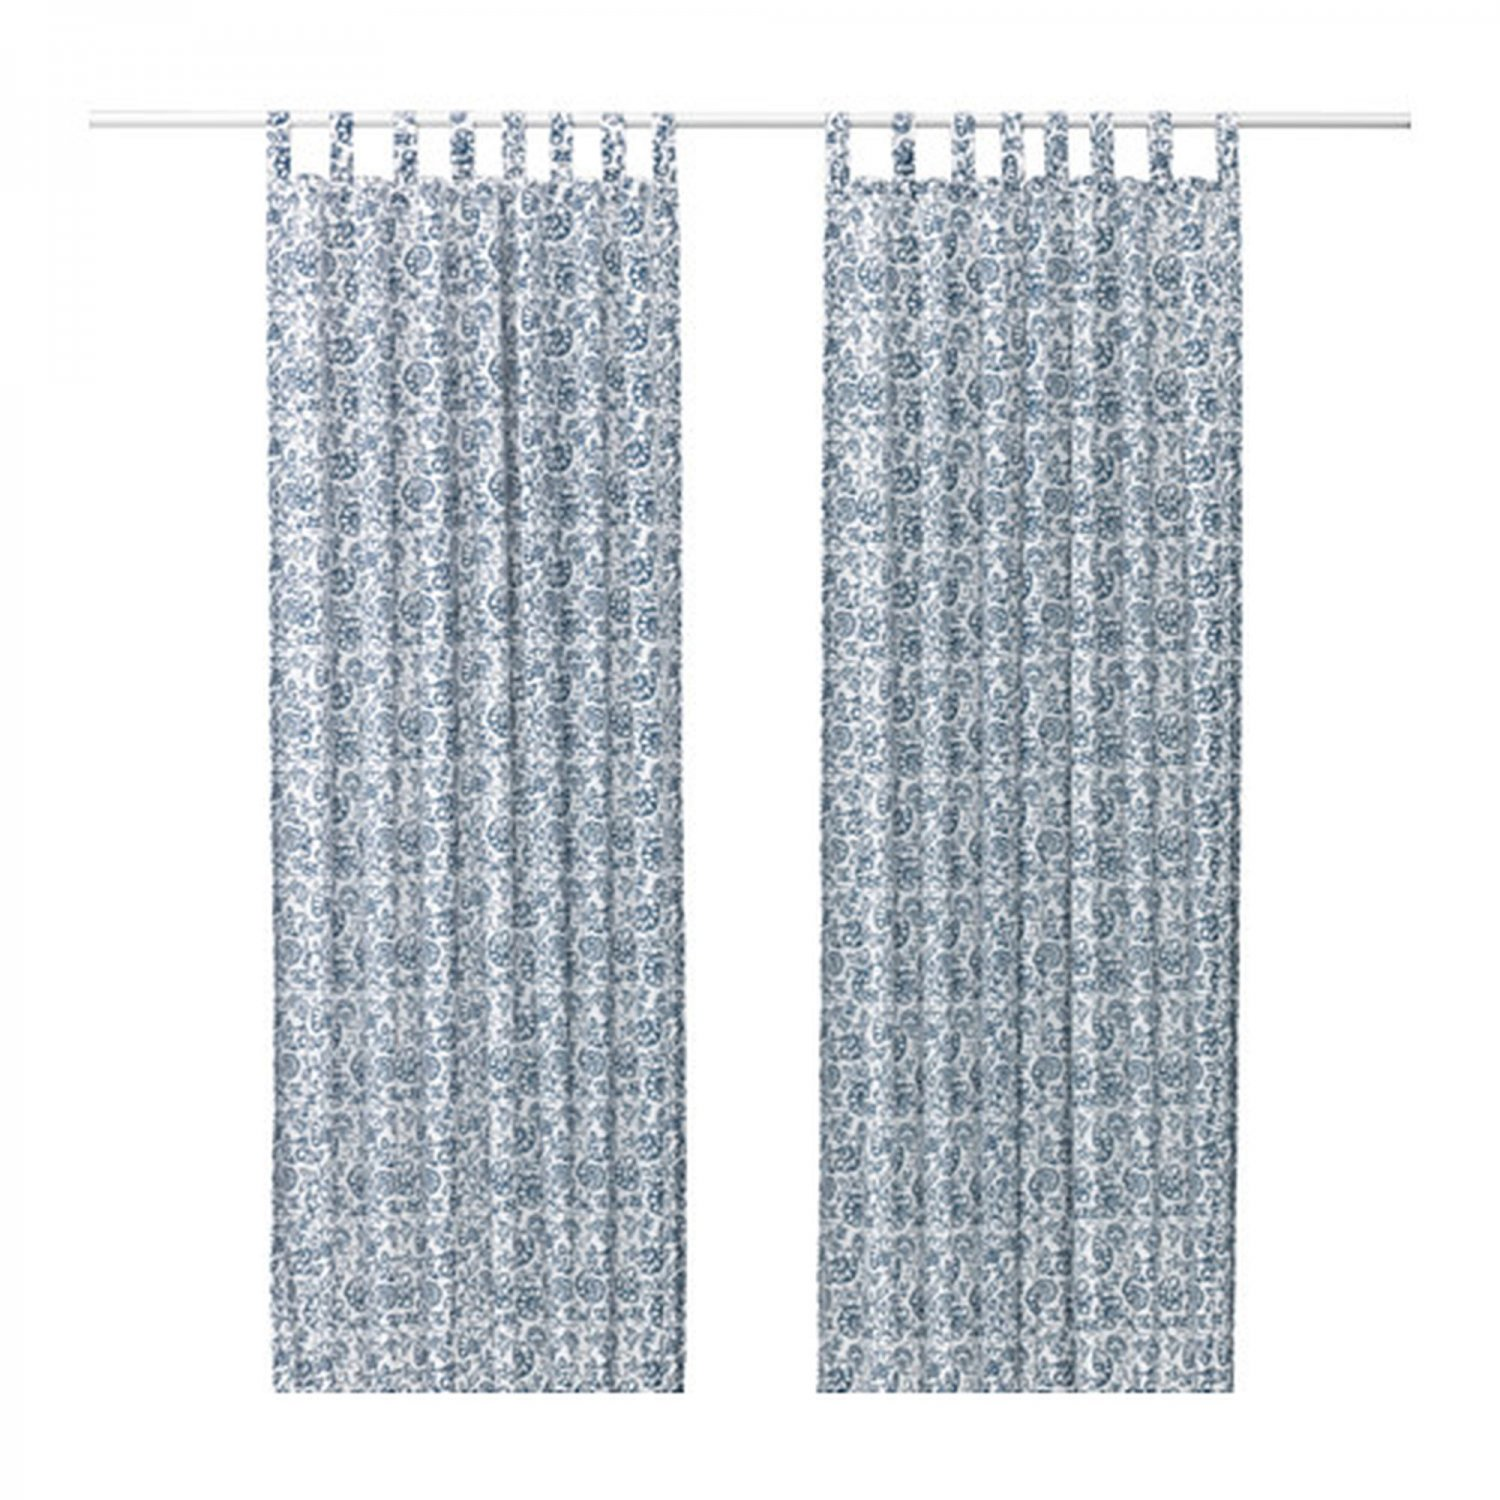 Ikea mjolkort curtains drapes blue white mj lk rt floral for White curtains ikea